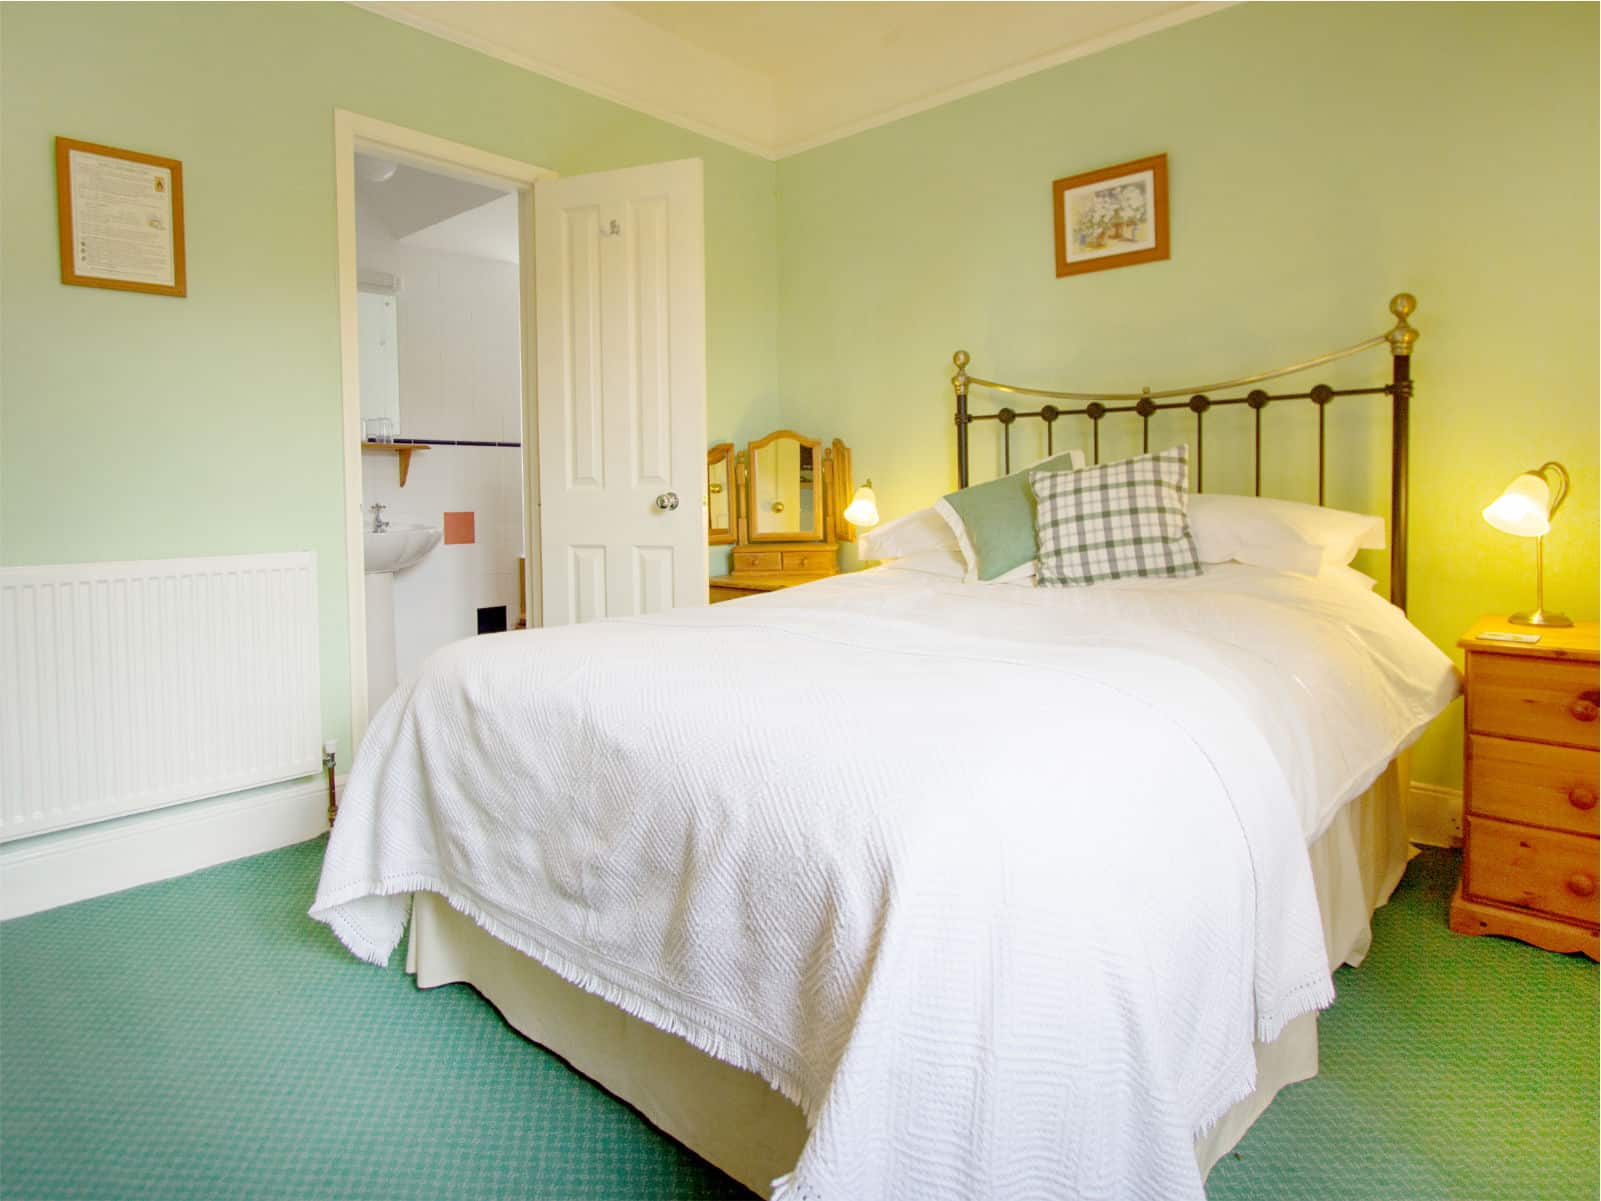 Willow Bedroom at Polraen Country House